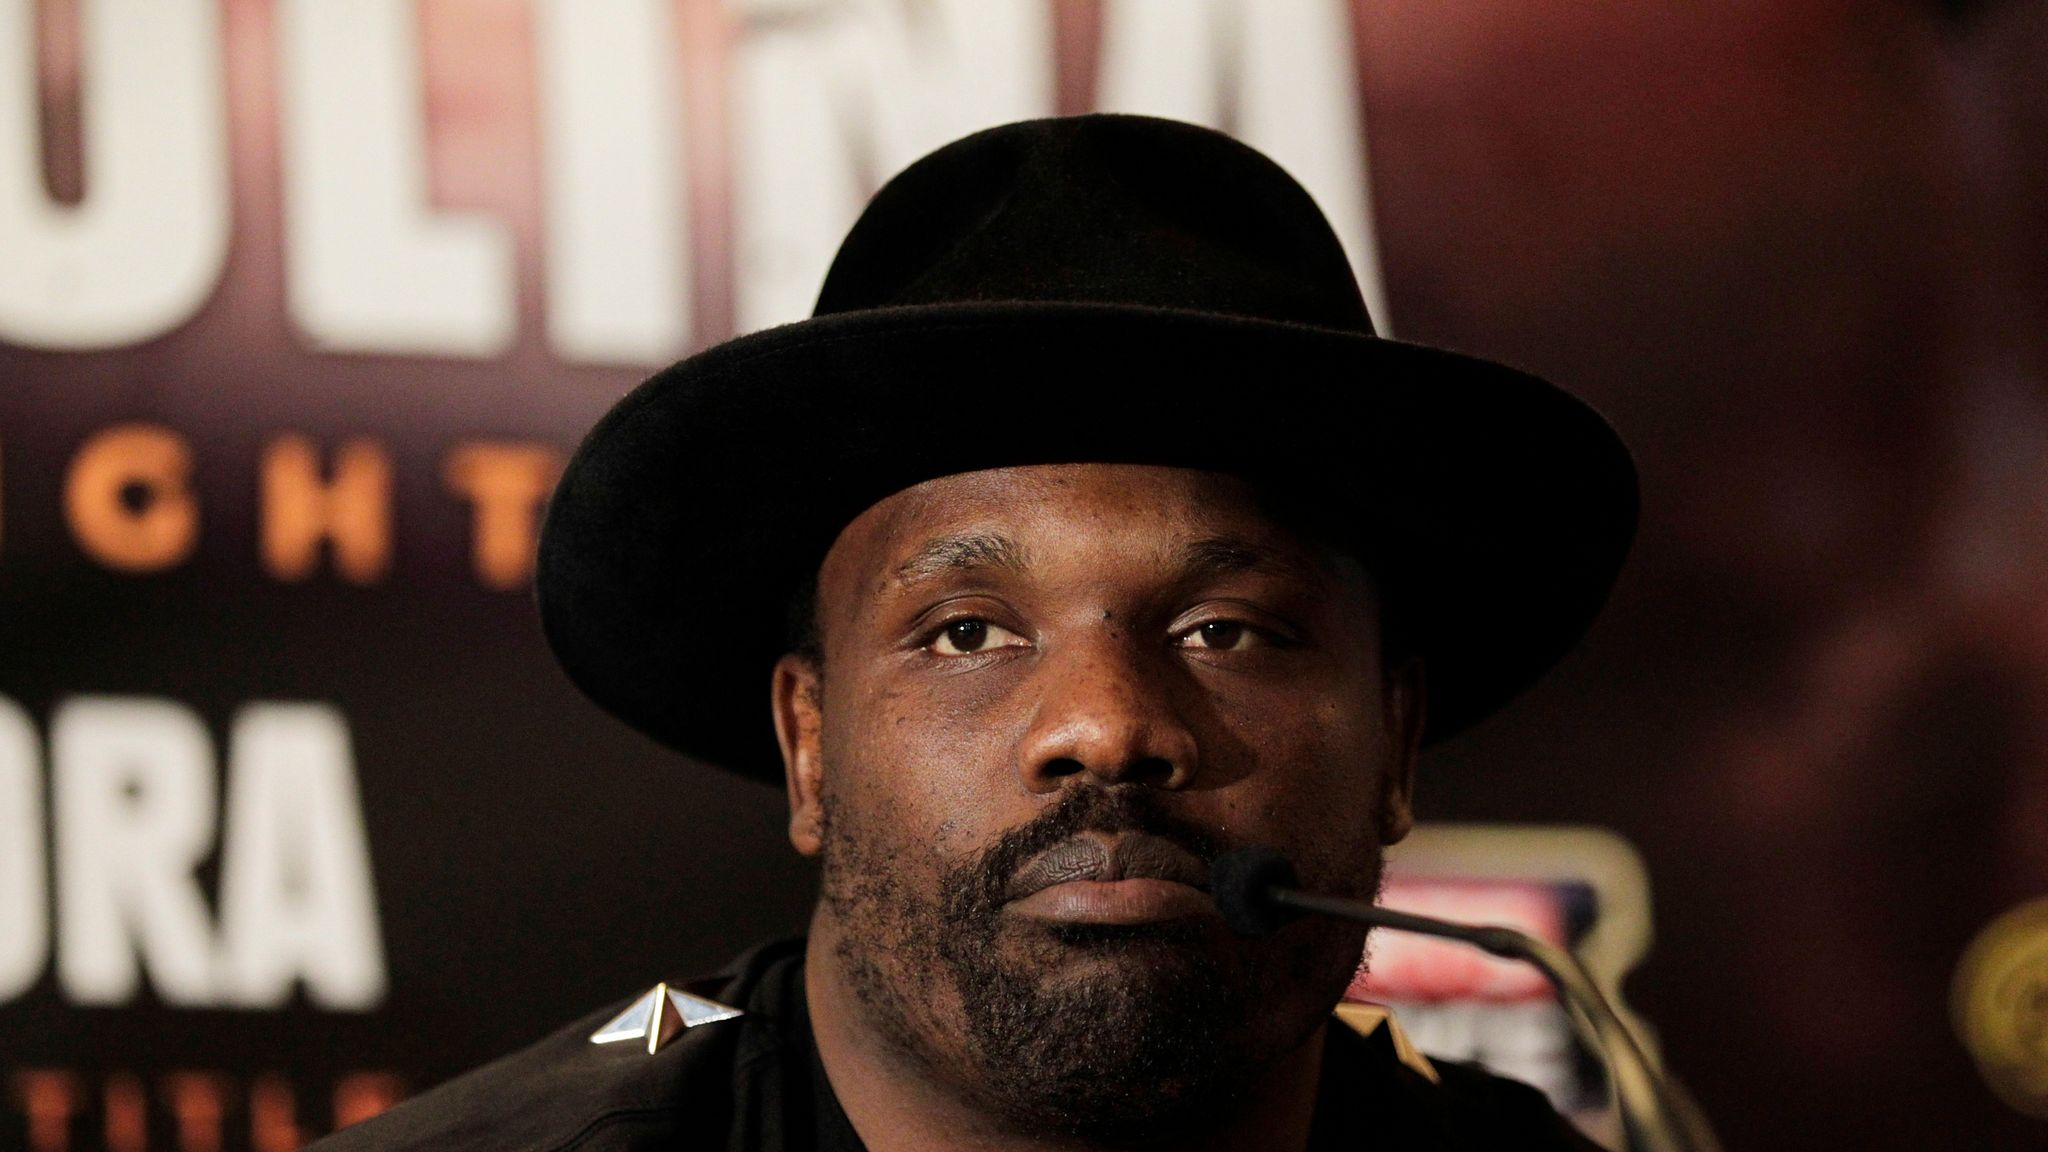 Whyte vs Chisora 2: Derek Chisora takes dig at rival, saying he does not need to weight-lift to carry power